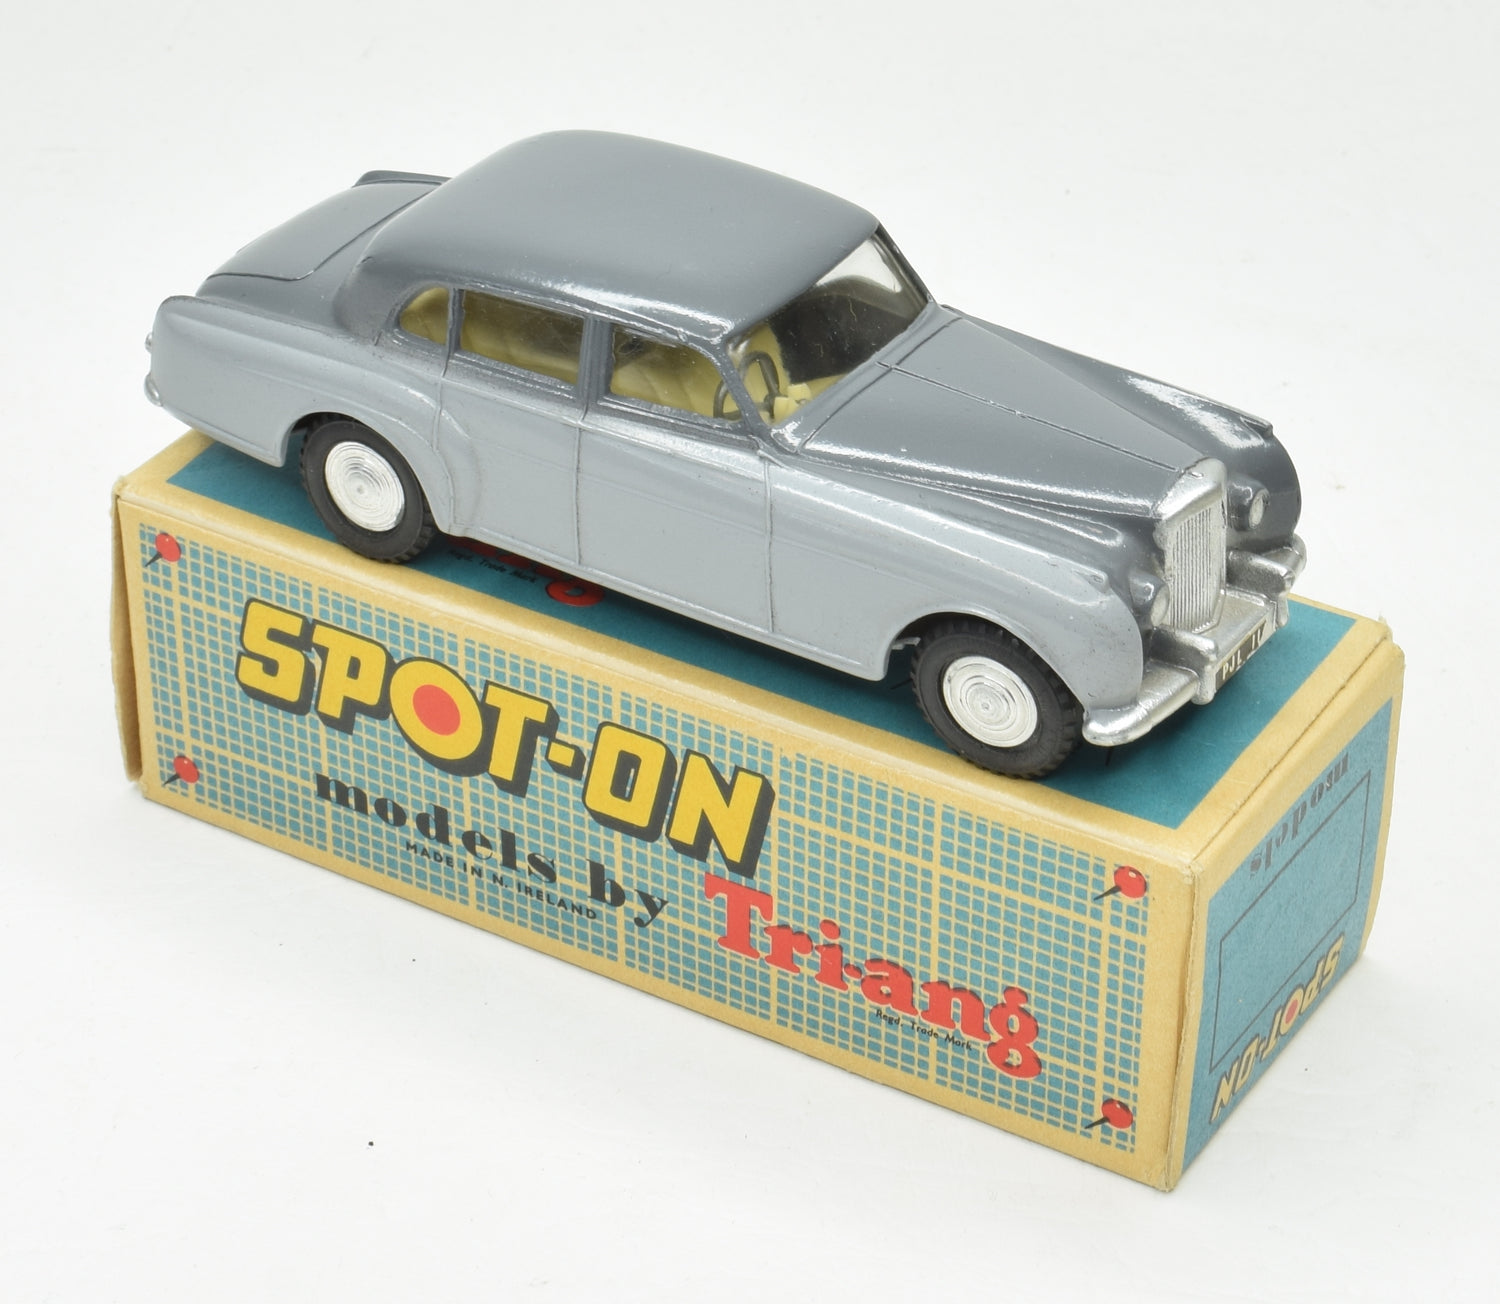 Spot-on 102 Bentley Virtually Mint/Boxed 'Carlton' Collection